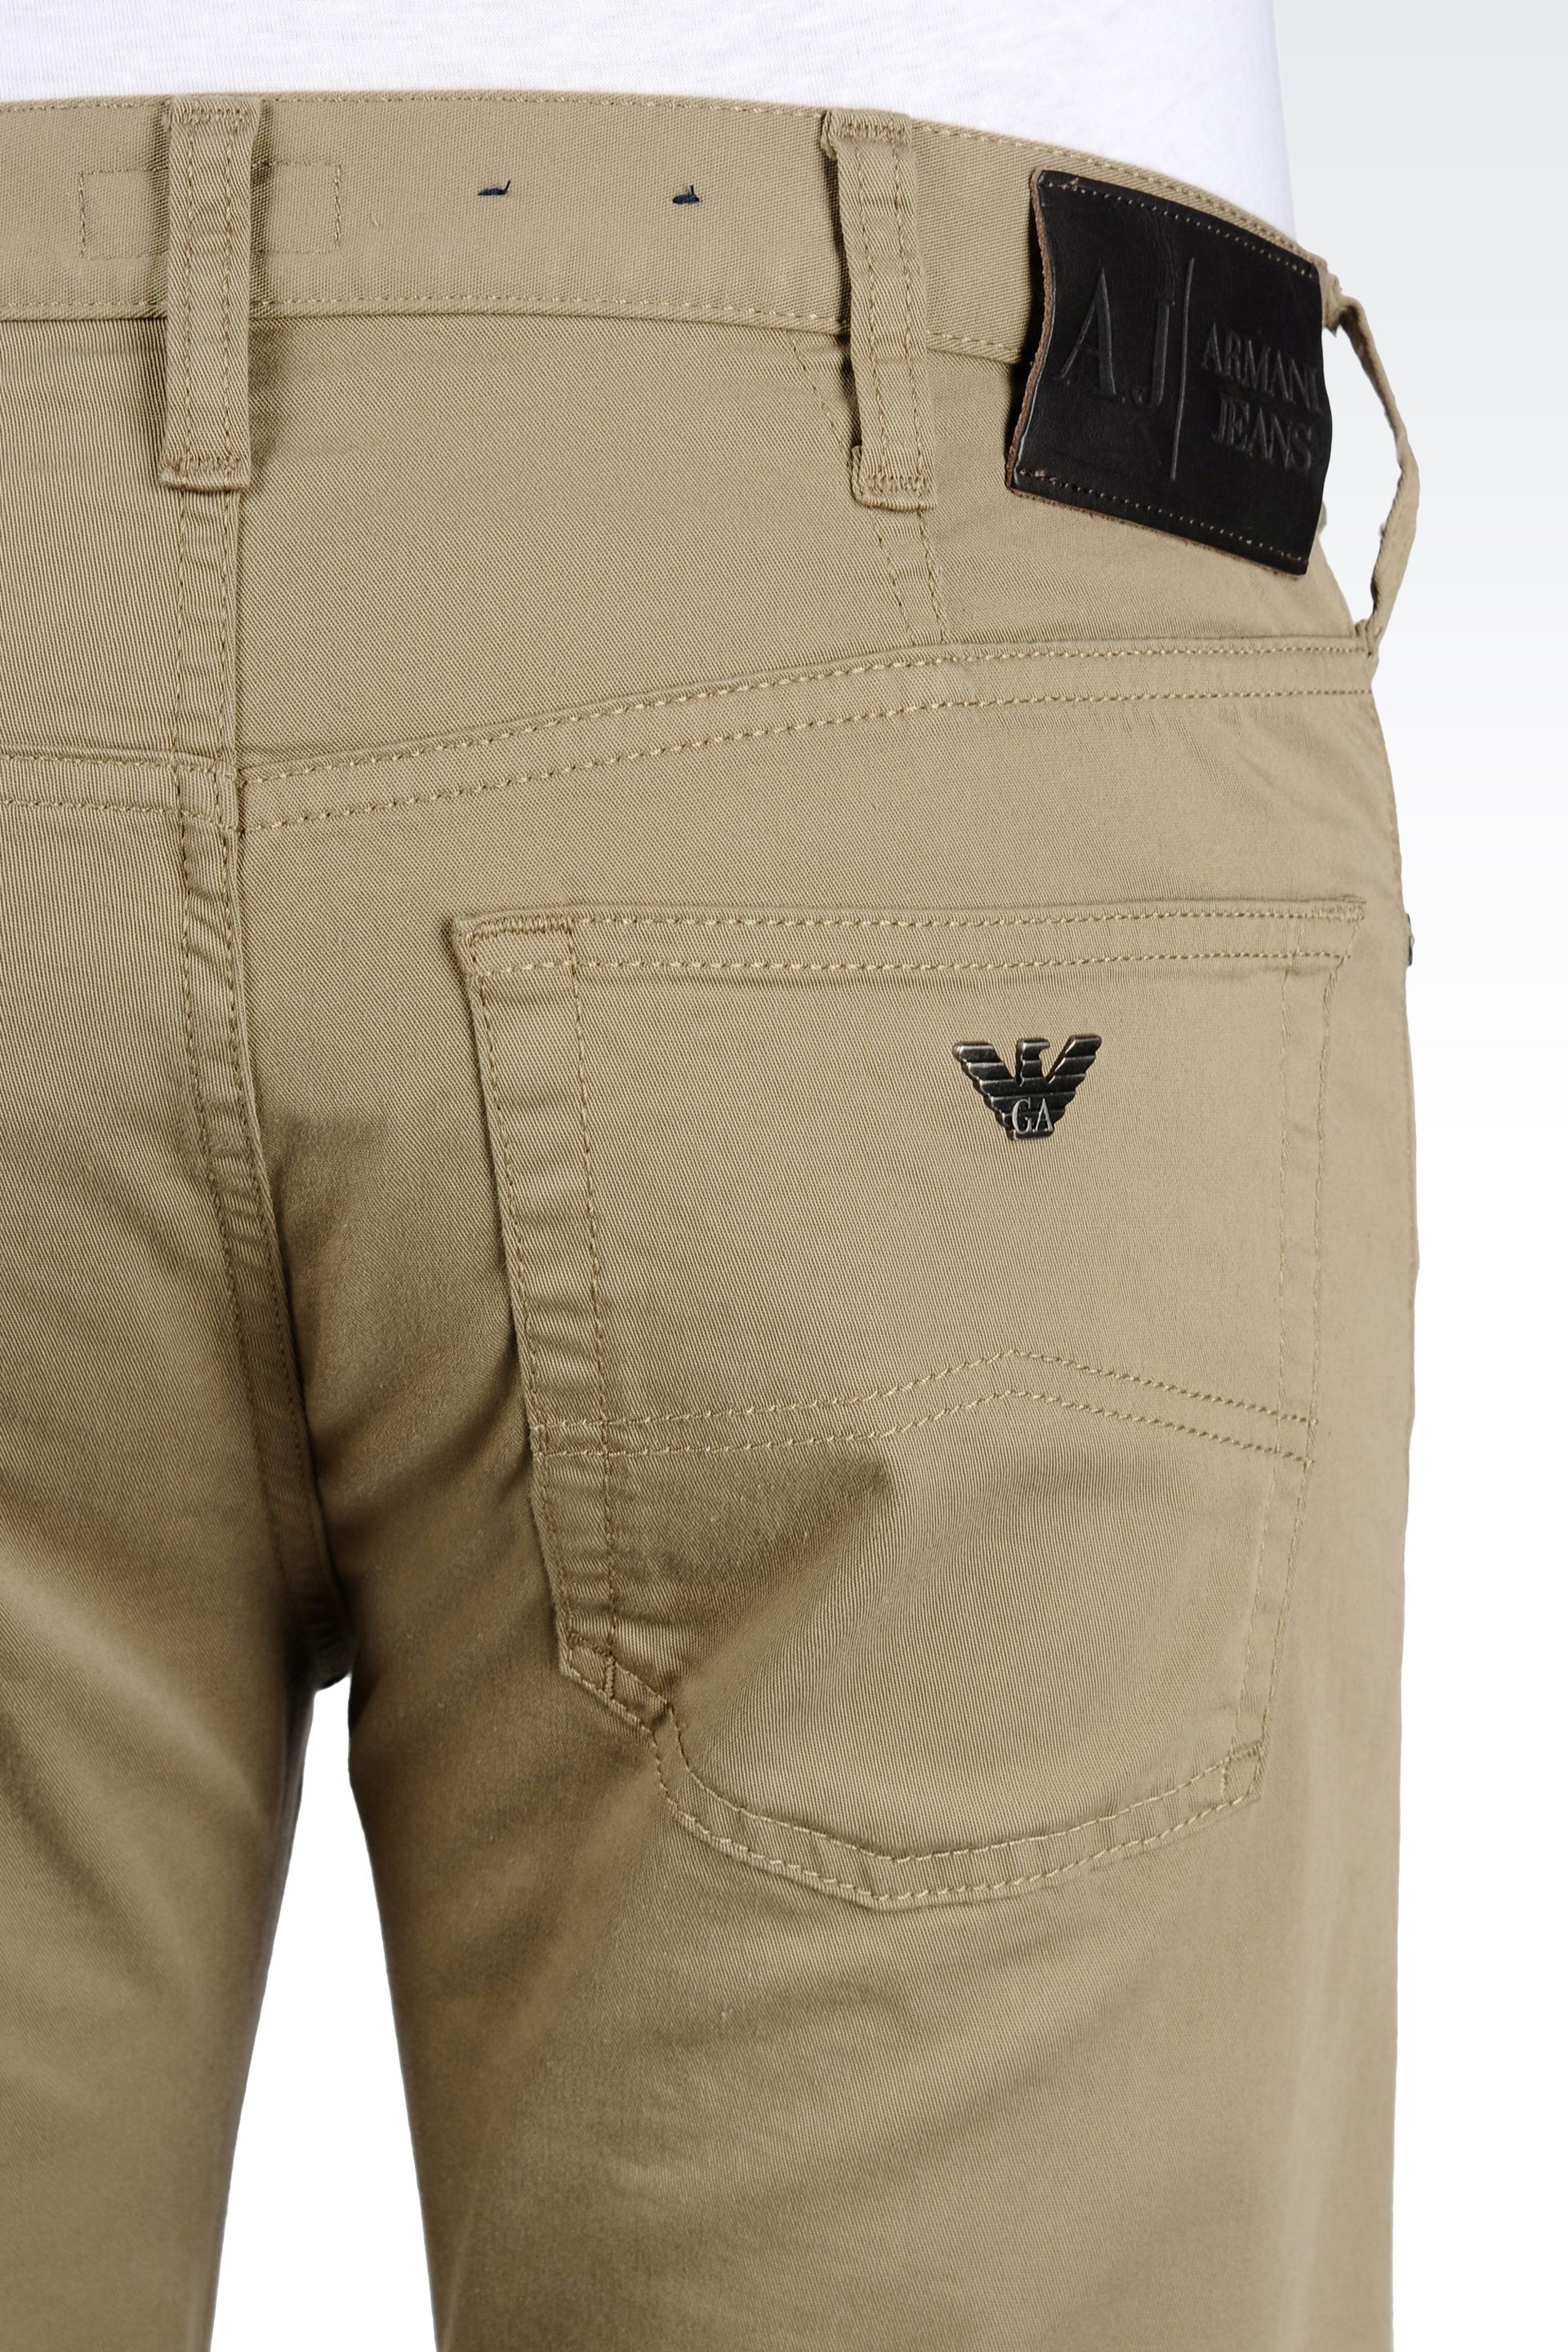 59393d16 Armani Jeans 5-Pocket Trousers In Stretch Gabardine in Natural for ...